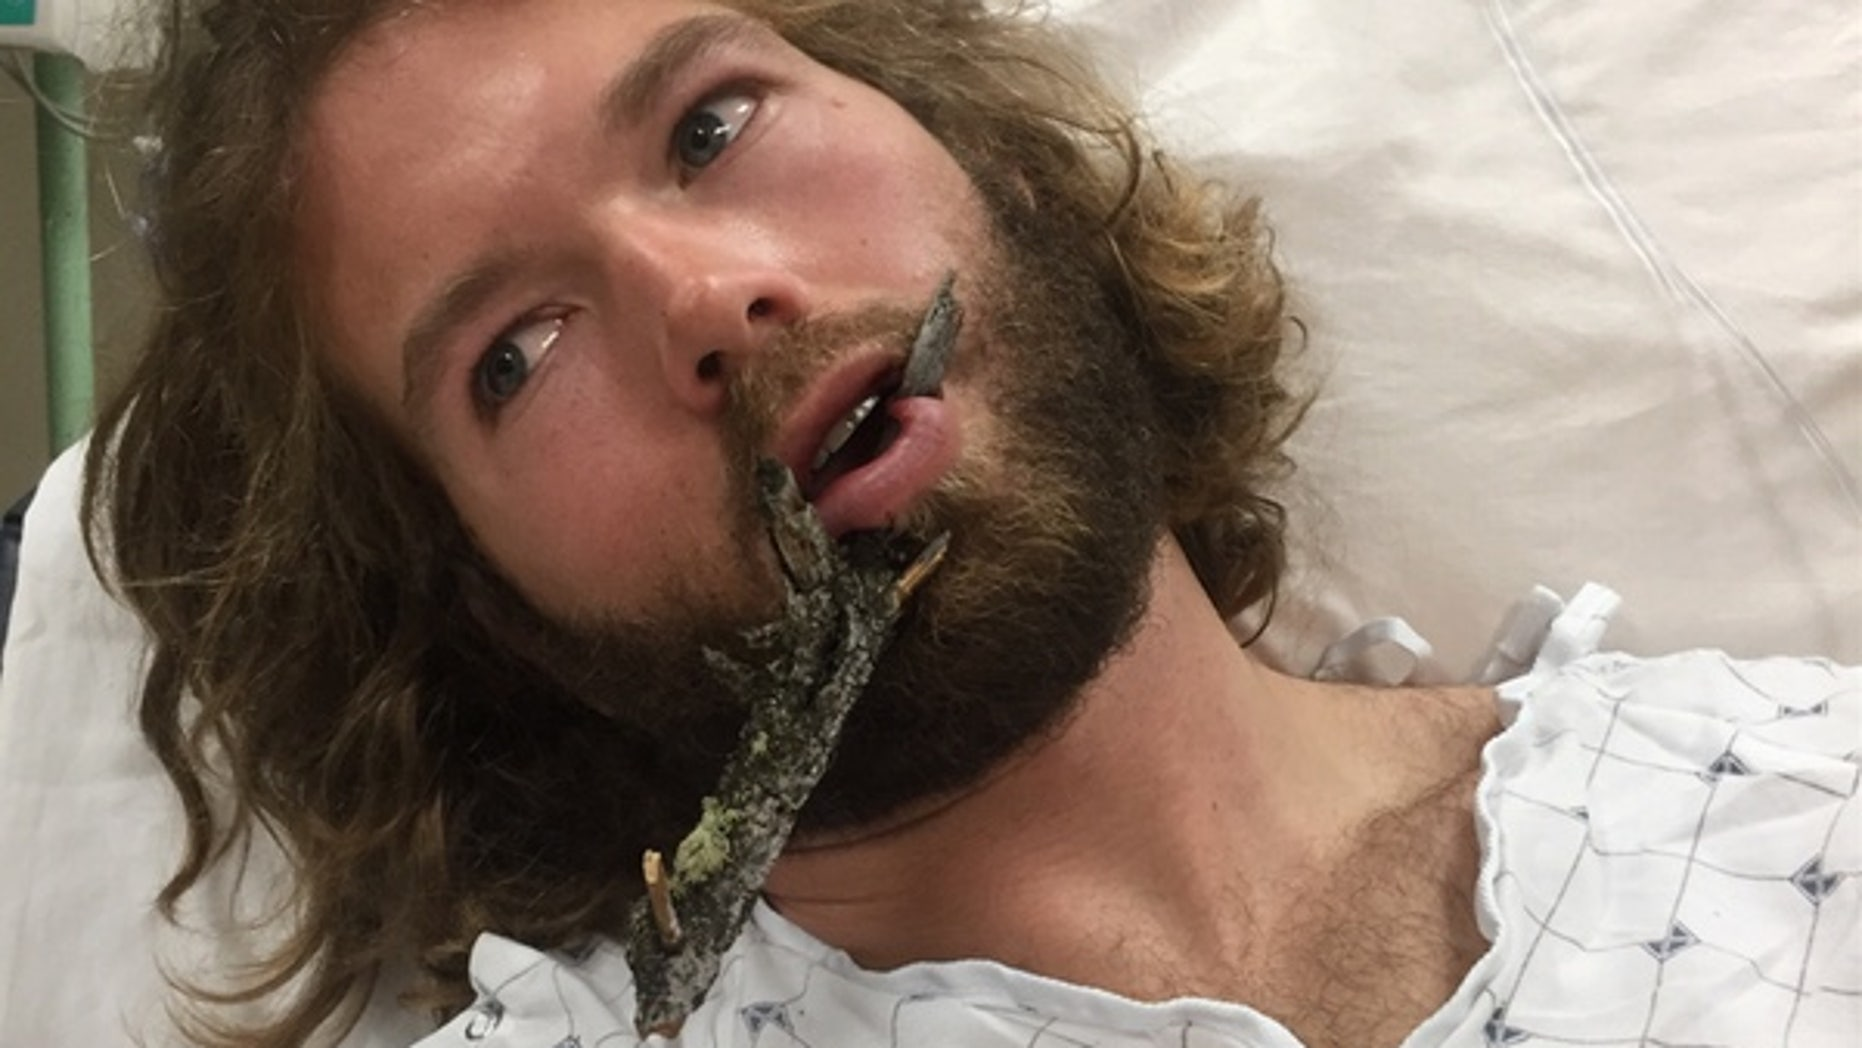 Natty Hagood, 29, was impaled by a tree branch while skiing at the Jackson Hole Mountain Resort.